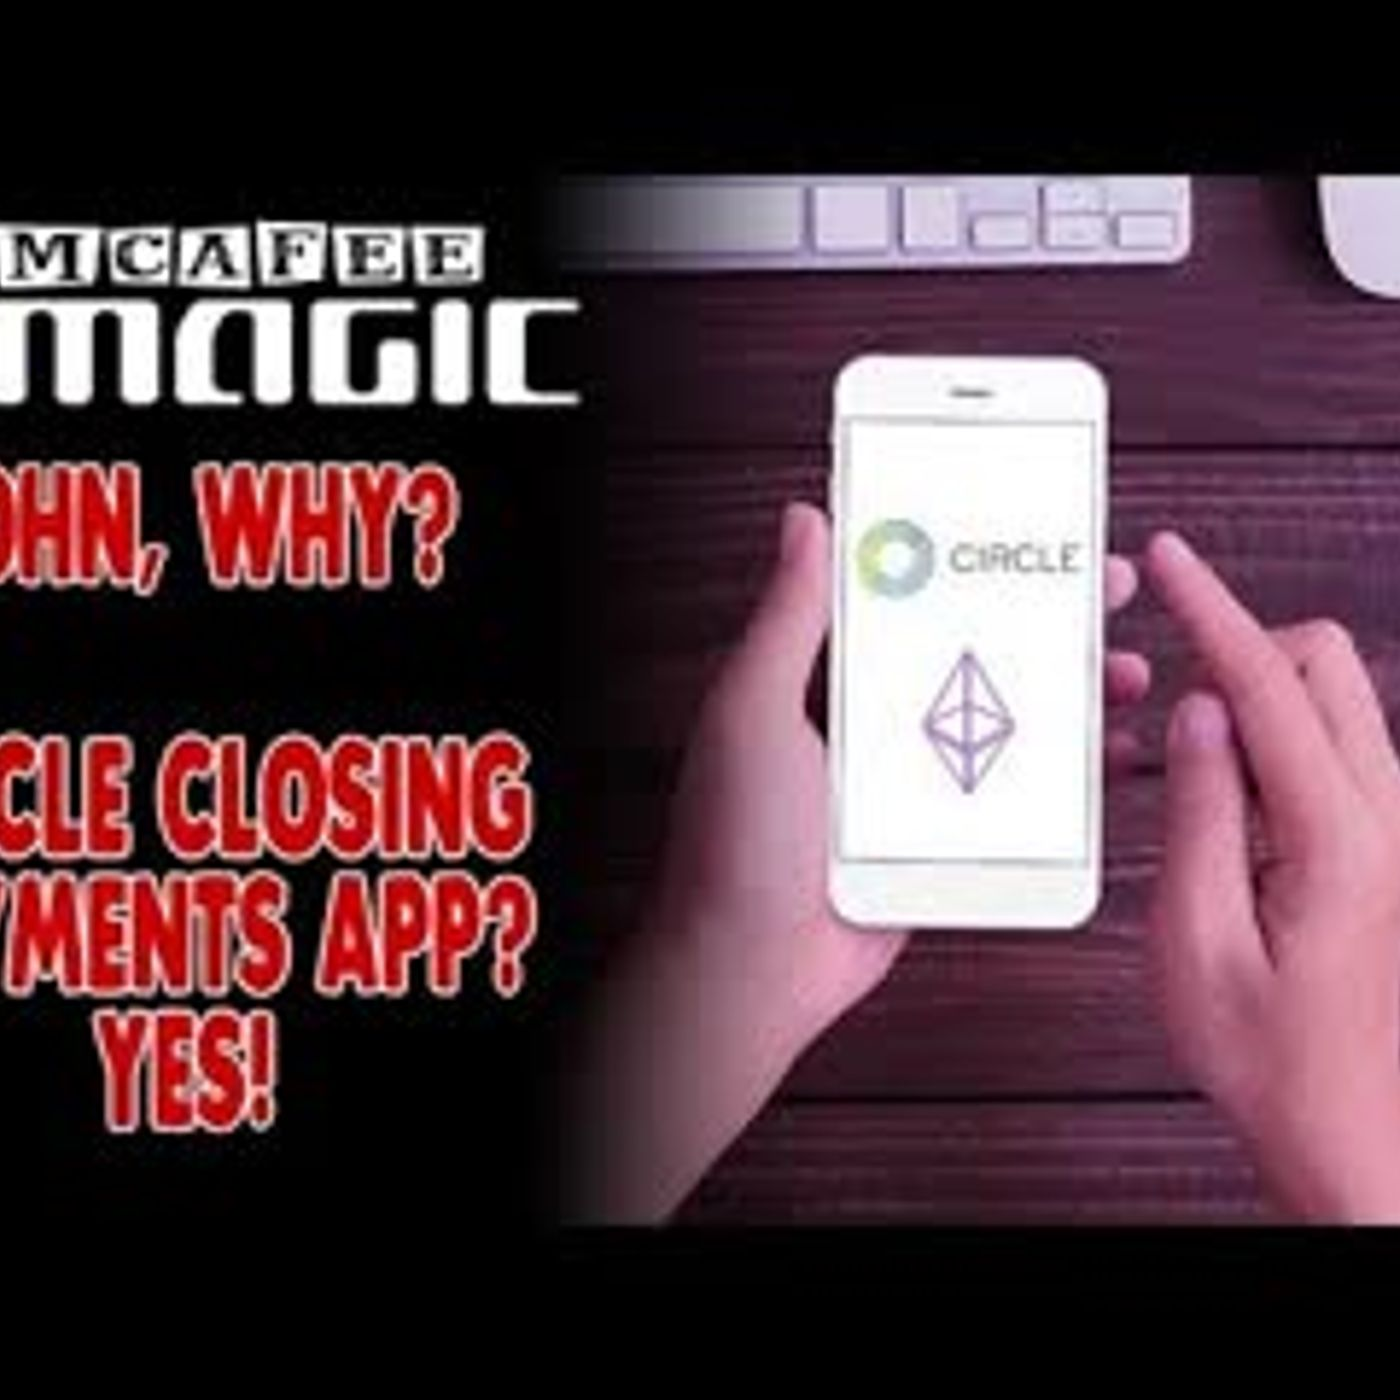 MCAFEE MAGIC is a BOT CIRCLE Closing Payments App ... Who will fill the GAP!